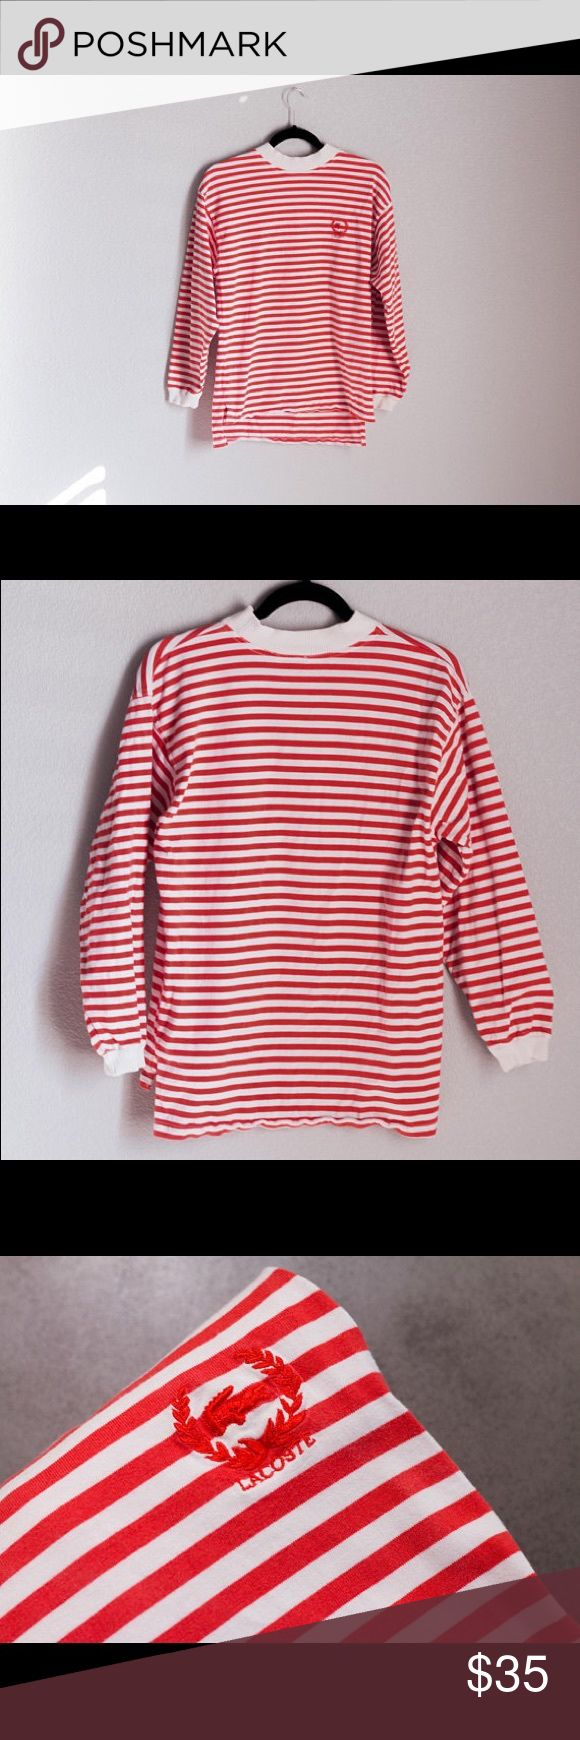 90s IZOD LACOSTE Striped Pullover Sweater Top 90s Vintage IZOD LACOSTE Long Sleeve Pullover Sweater Top w Red and White Stripes | #Urban #Streetwear  Size: Small - Medium (Slim)  Condition: Staining by sleeve, please see last photo. Otherwise, good/fair condition. Lacoste Sweaters Crewneck